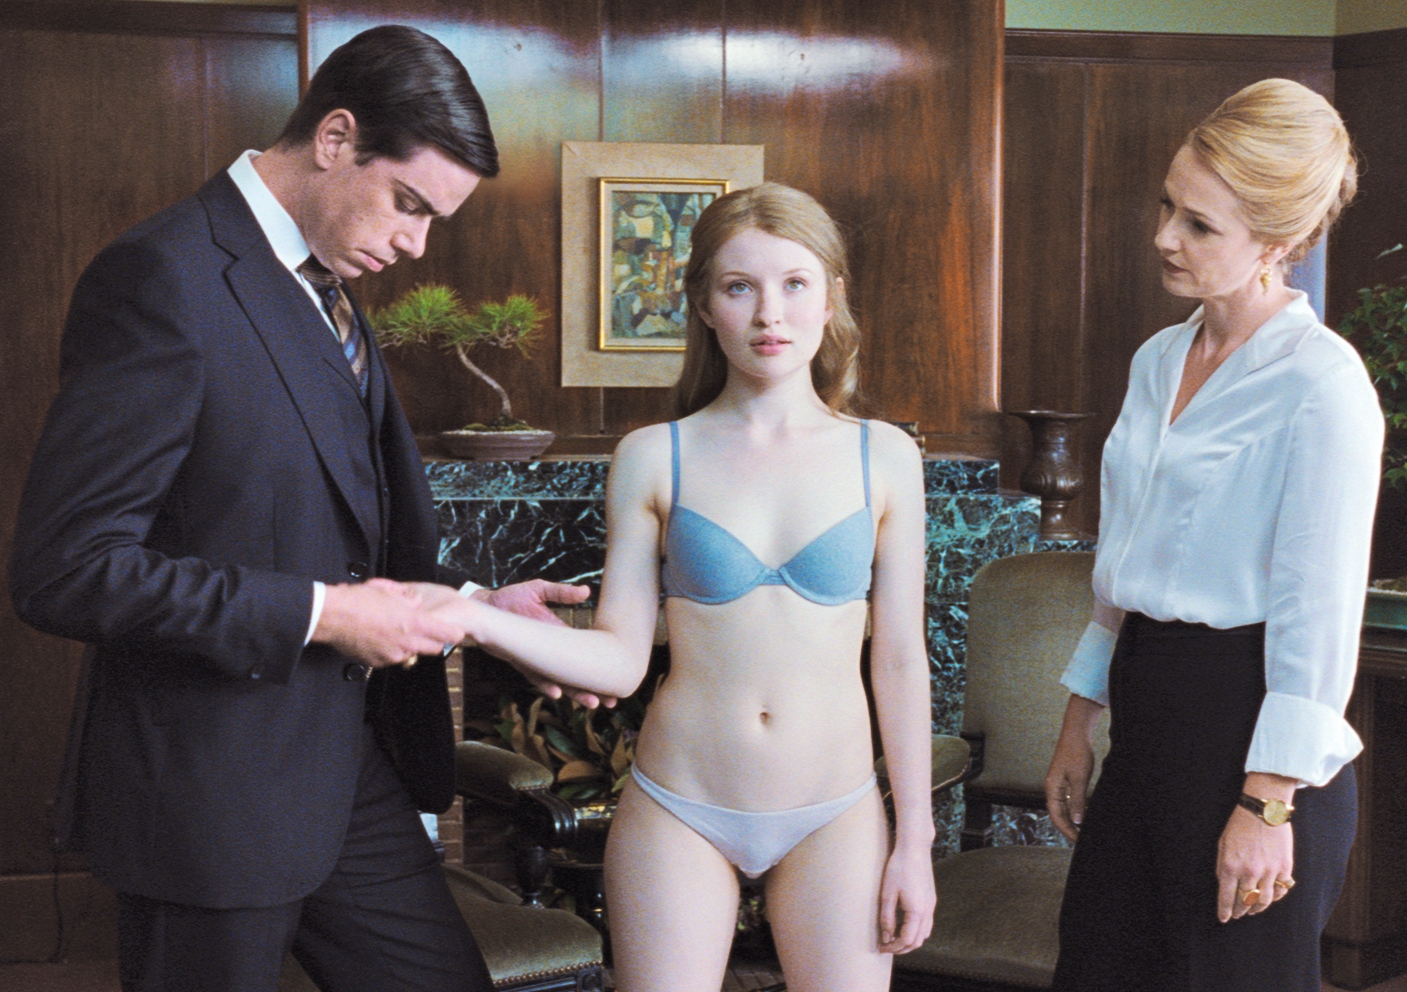 Sleeping Beauty (2011) - An Interview for a job scene with Emily Browning, nude actress